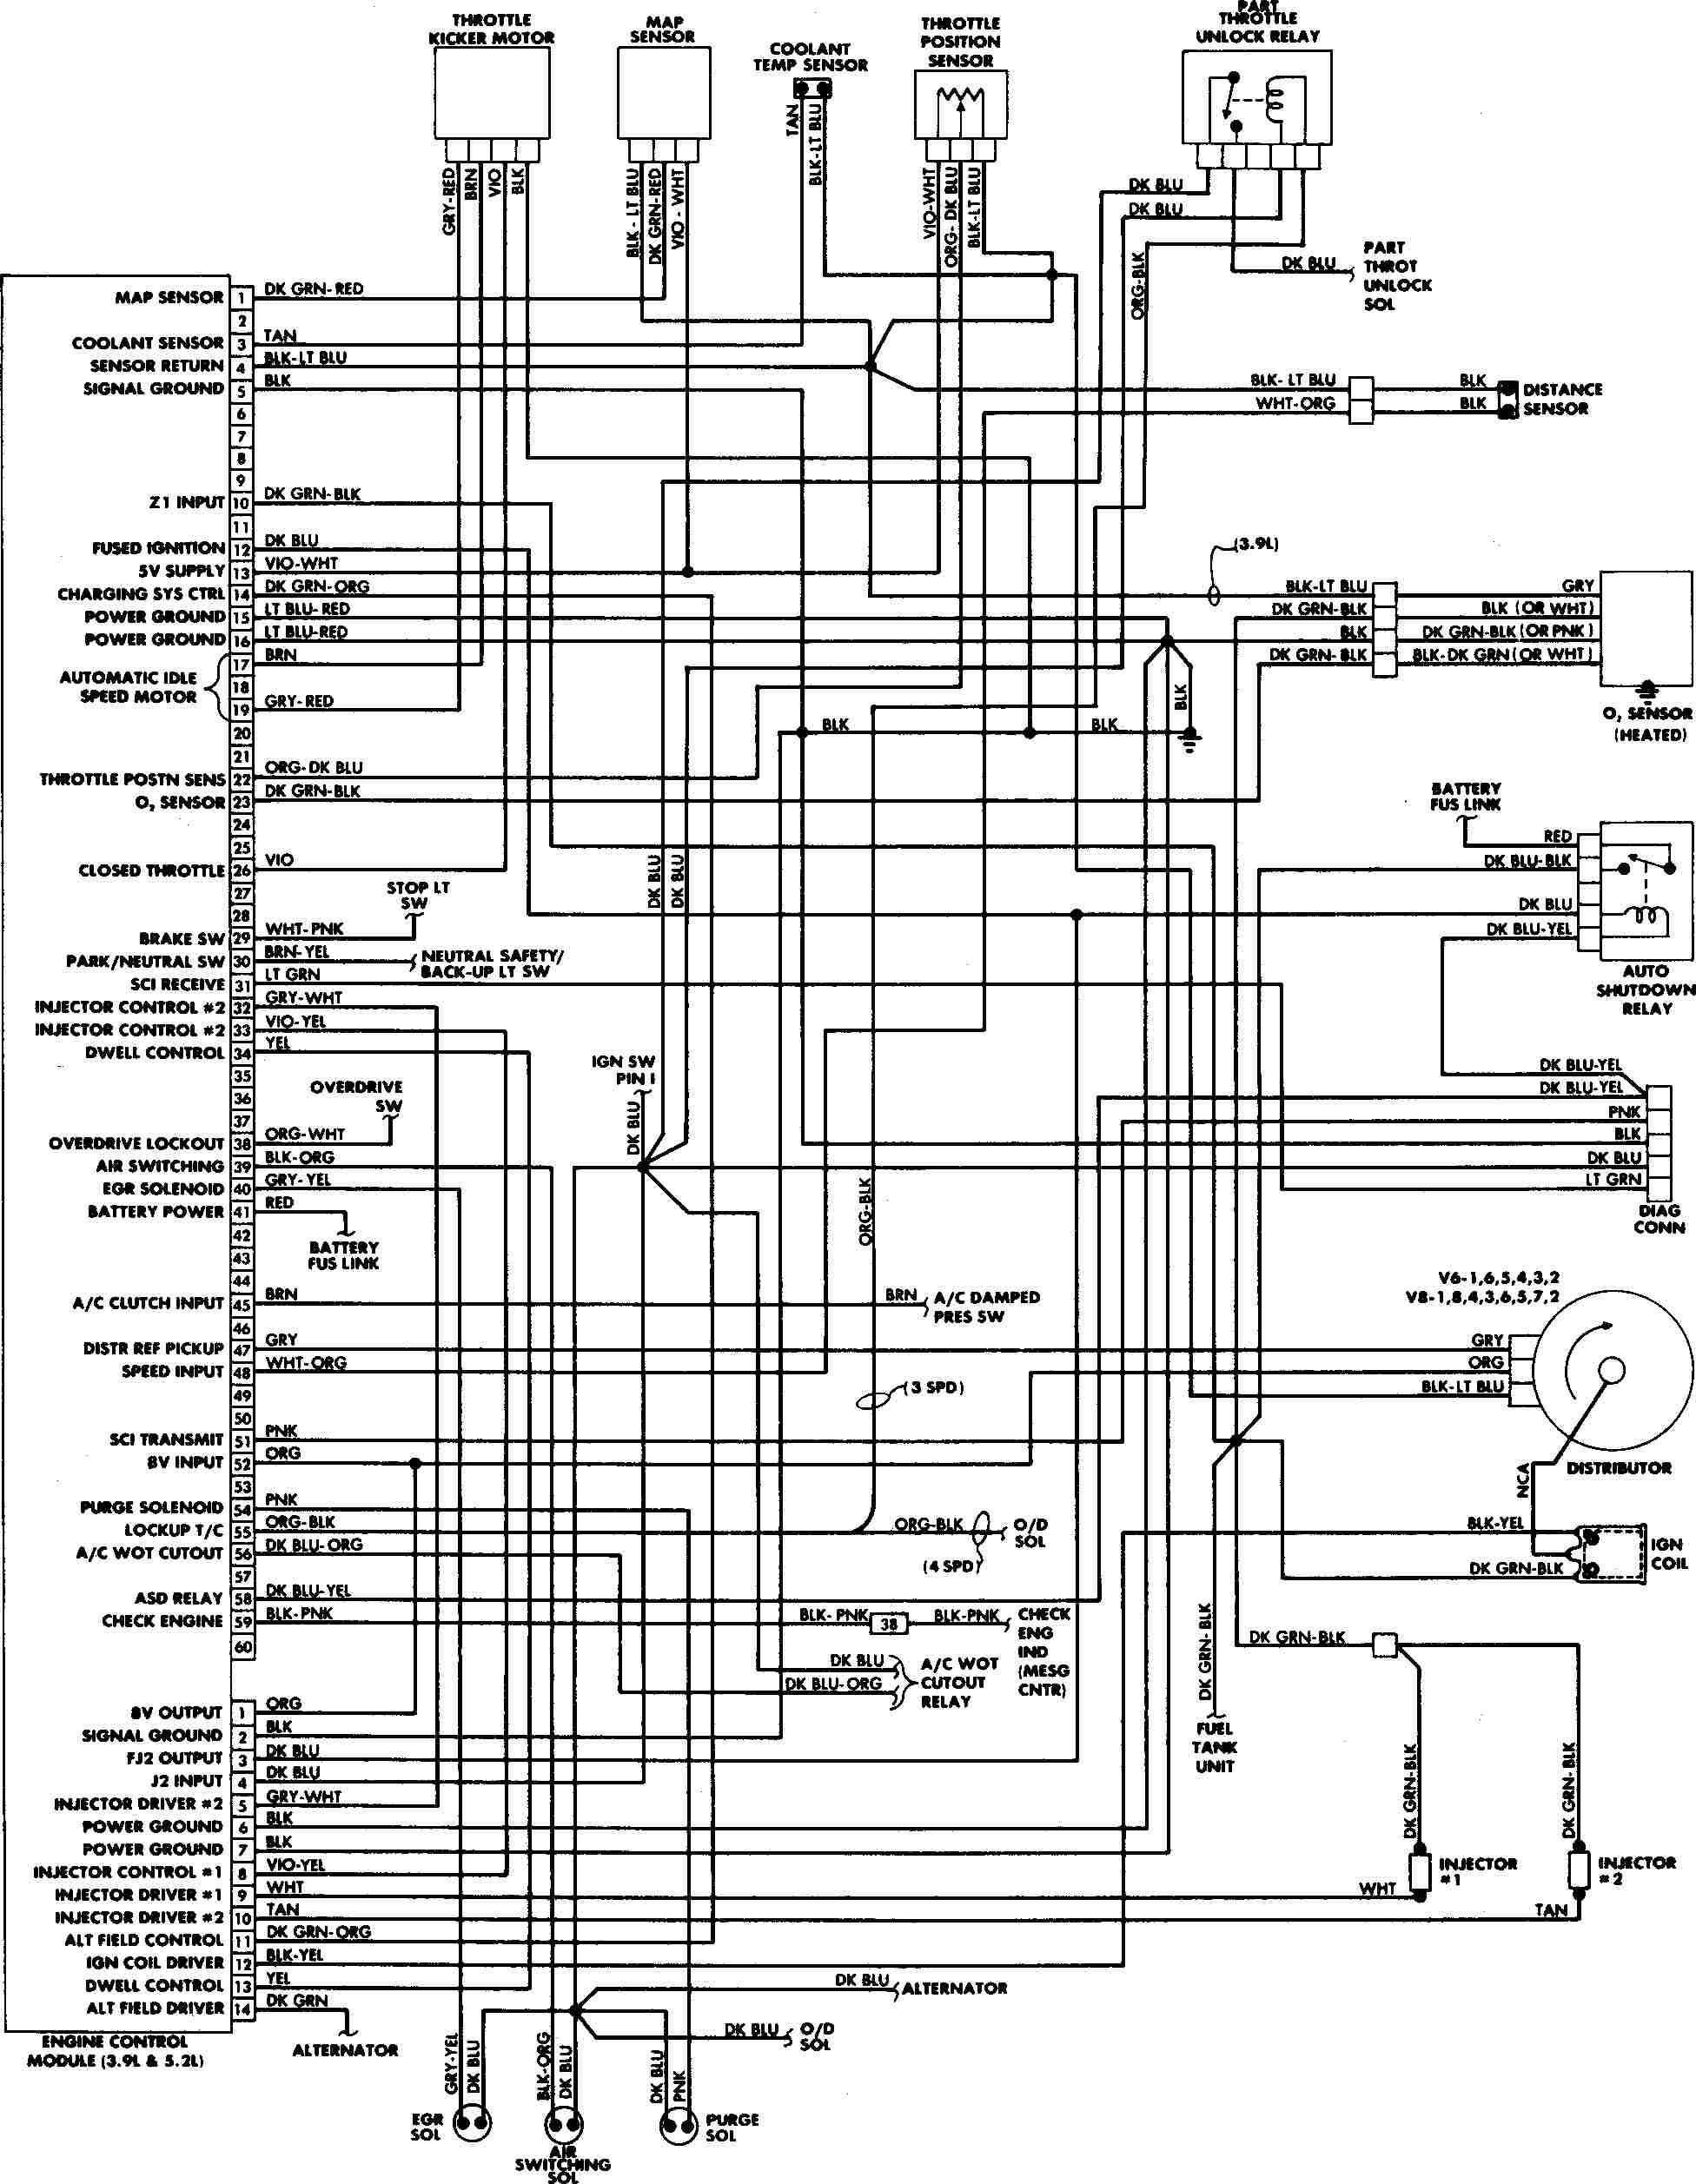 Standalone Pcm Wiring Diagram